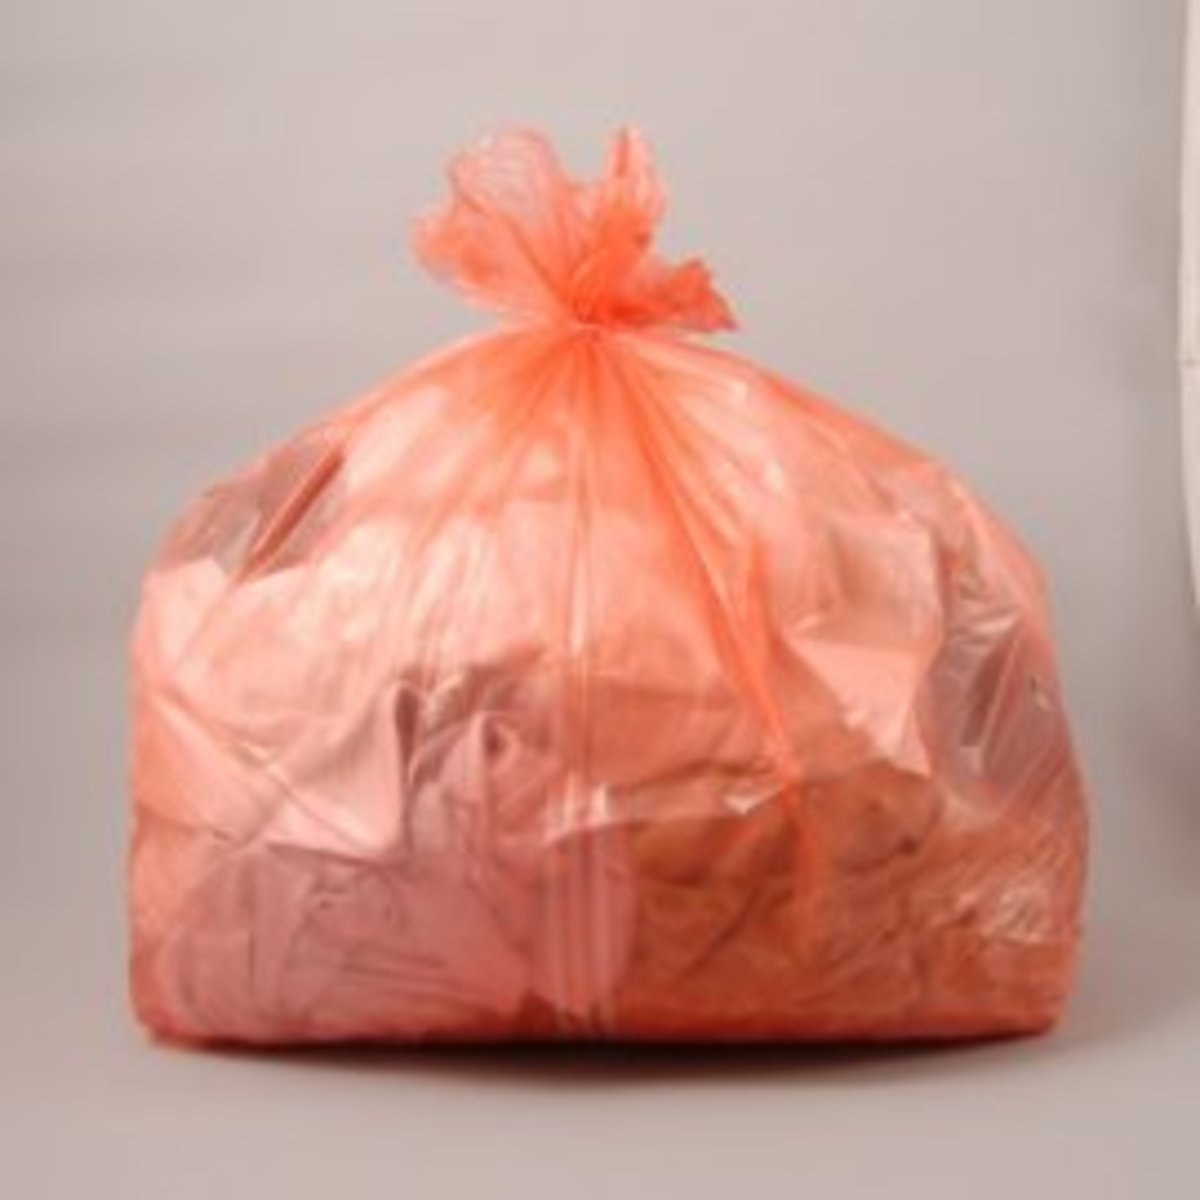 Red dissolvable strip laundry bags can be purchased from numerous online retailers